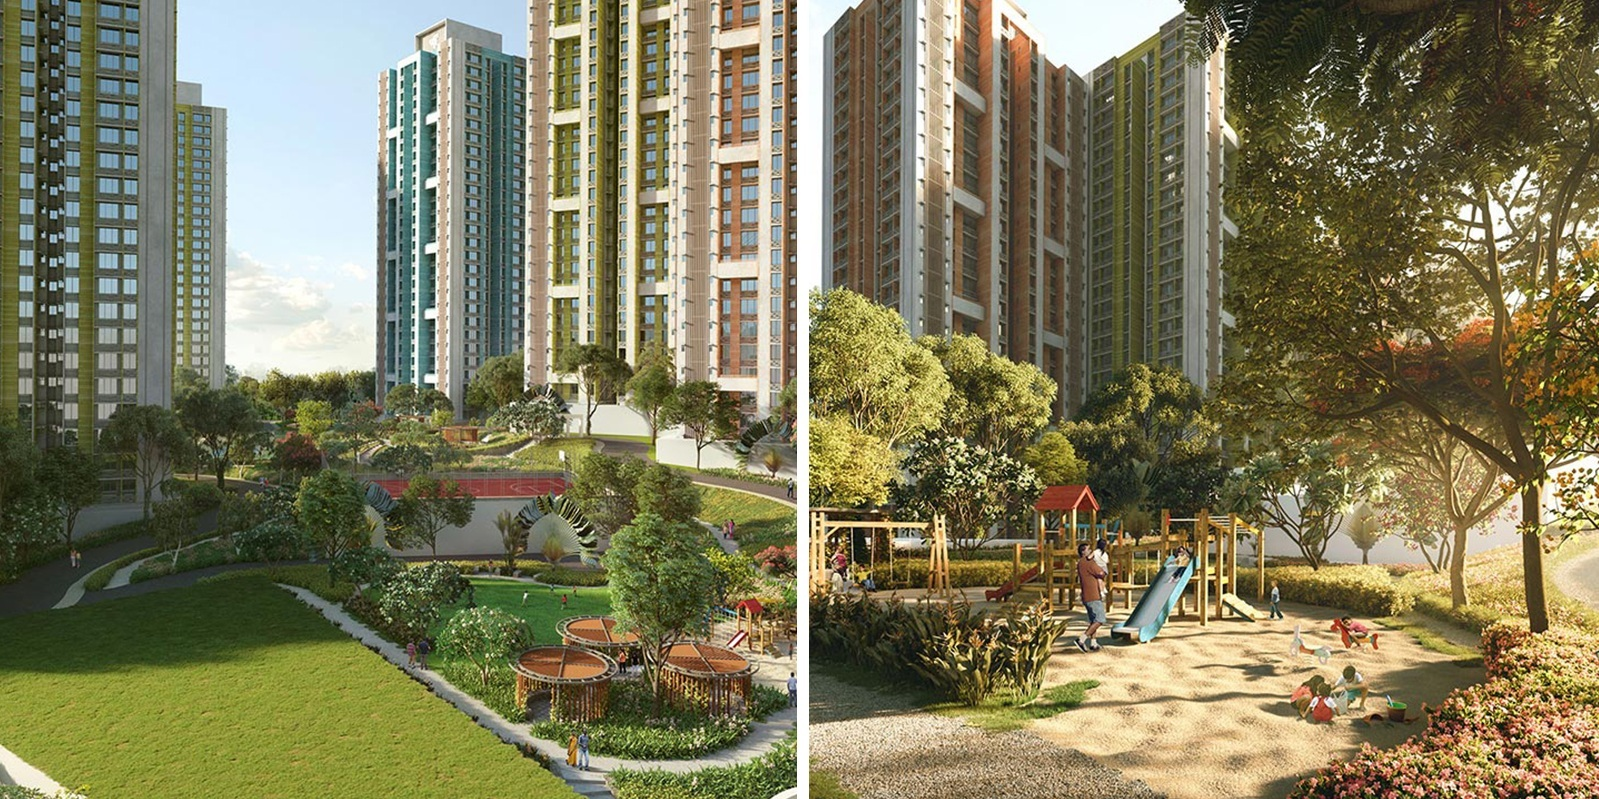 wadhwa wise city south block phase 1 b6 wing a4 amenities features7